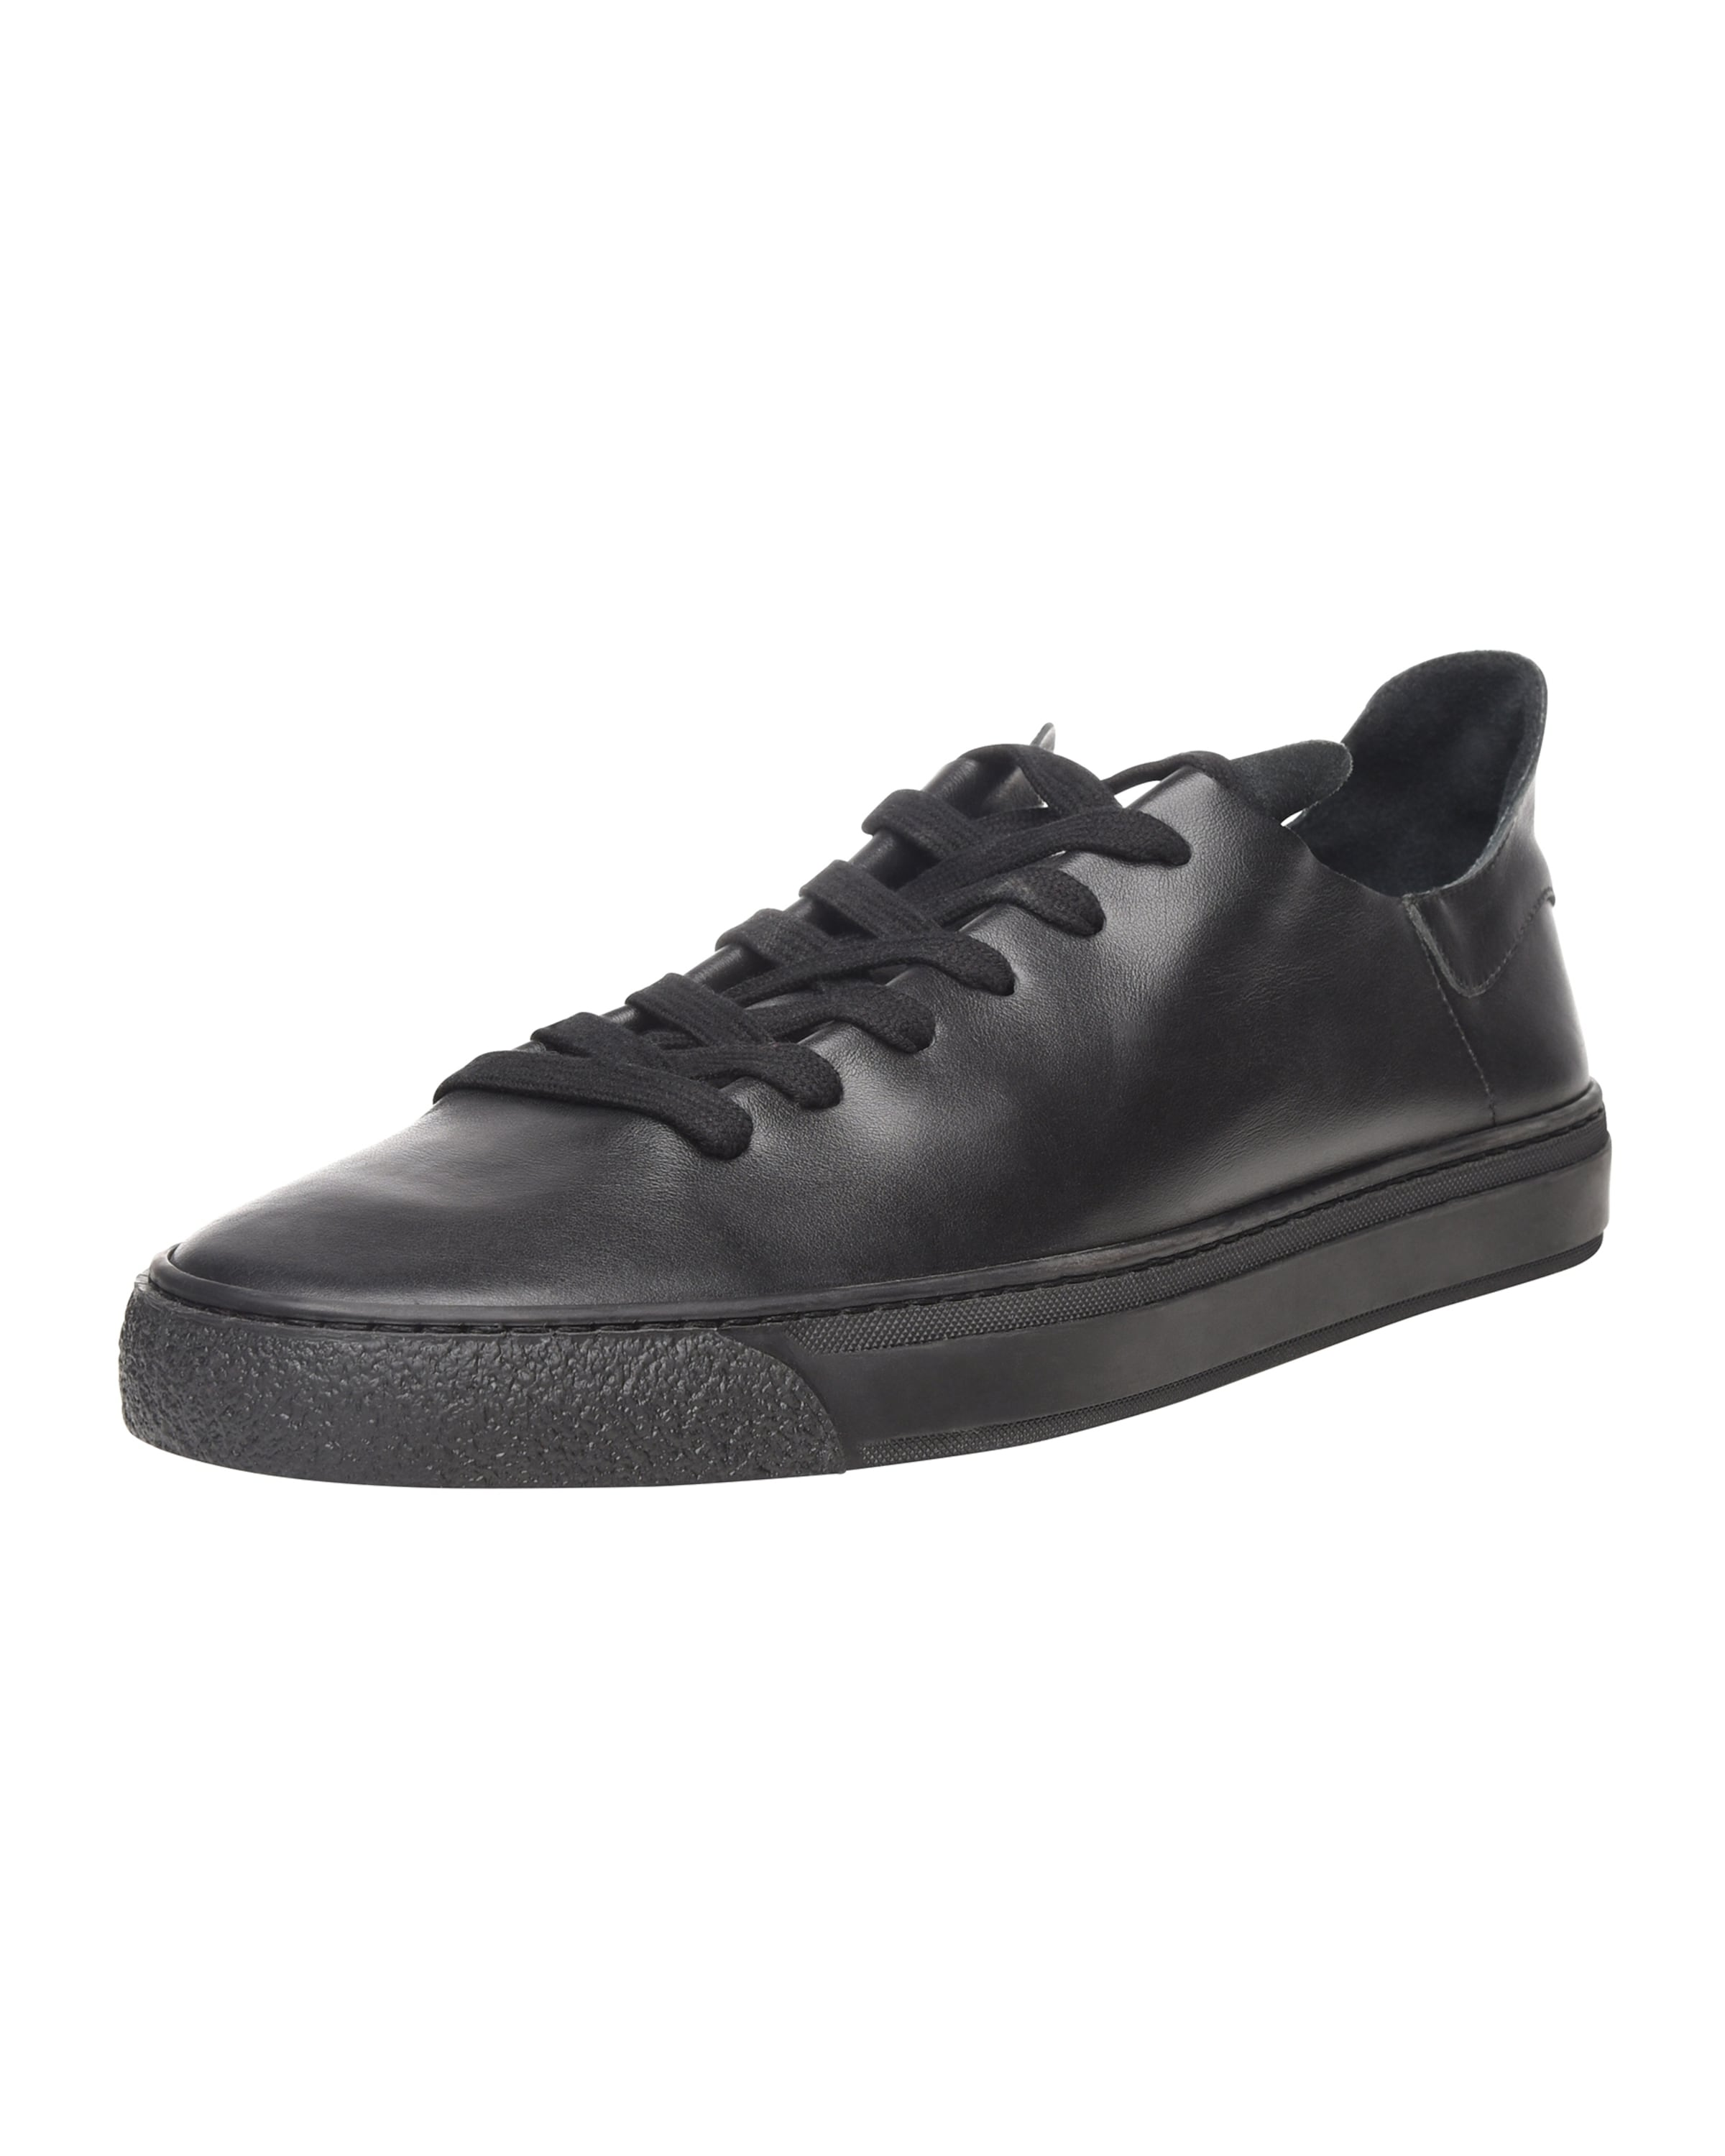 SHOEPASSION | Turnschuhe No. 31 MS